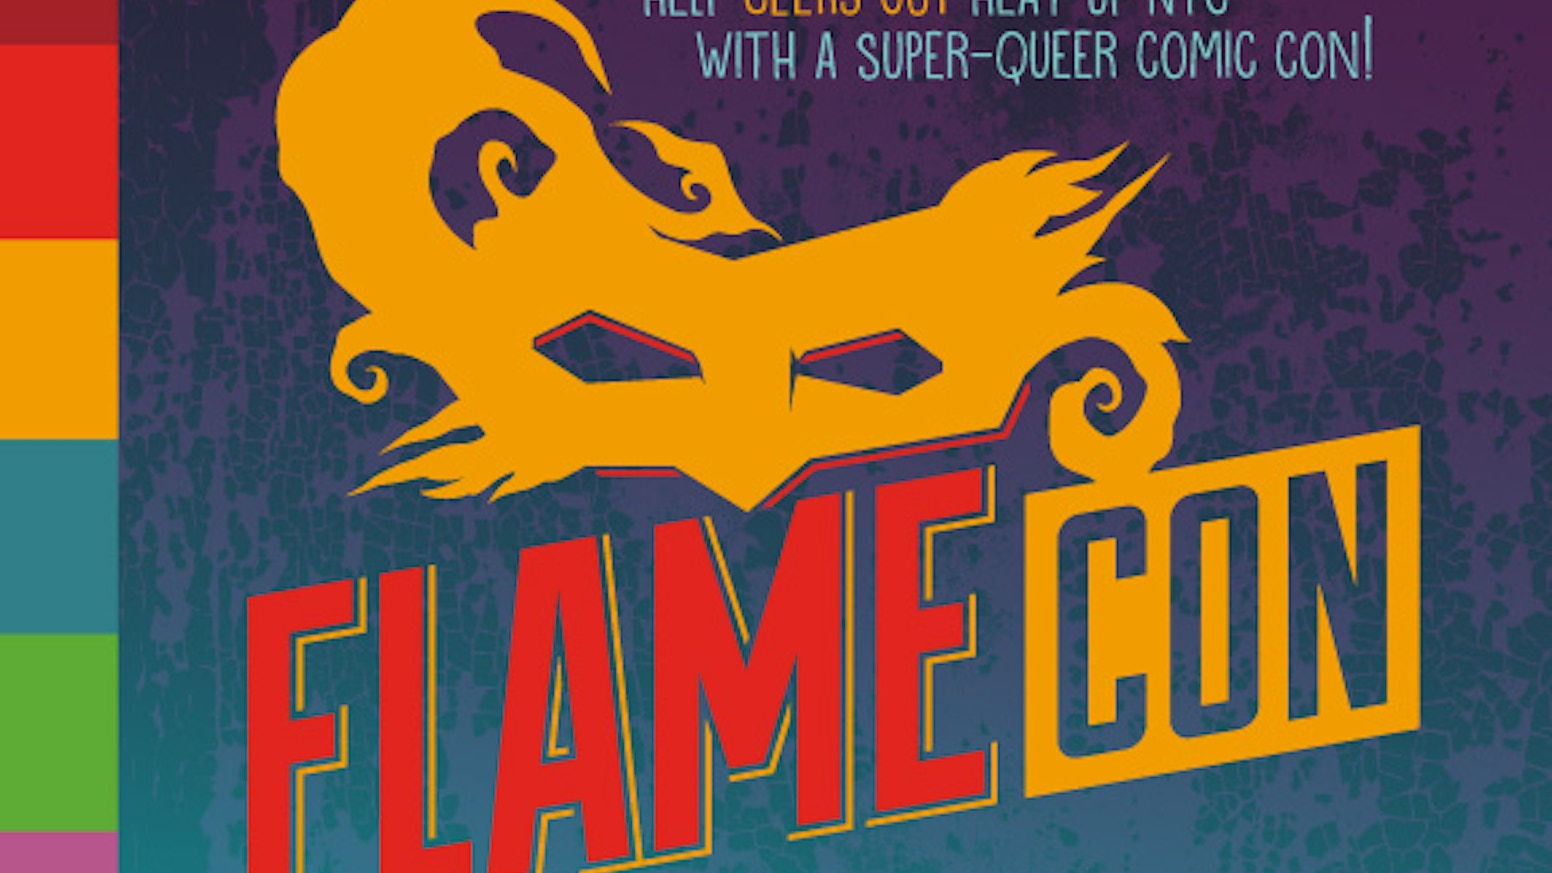 Help Geeks OUT heat up NYC with a super-queer comic con!